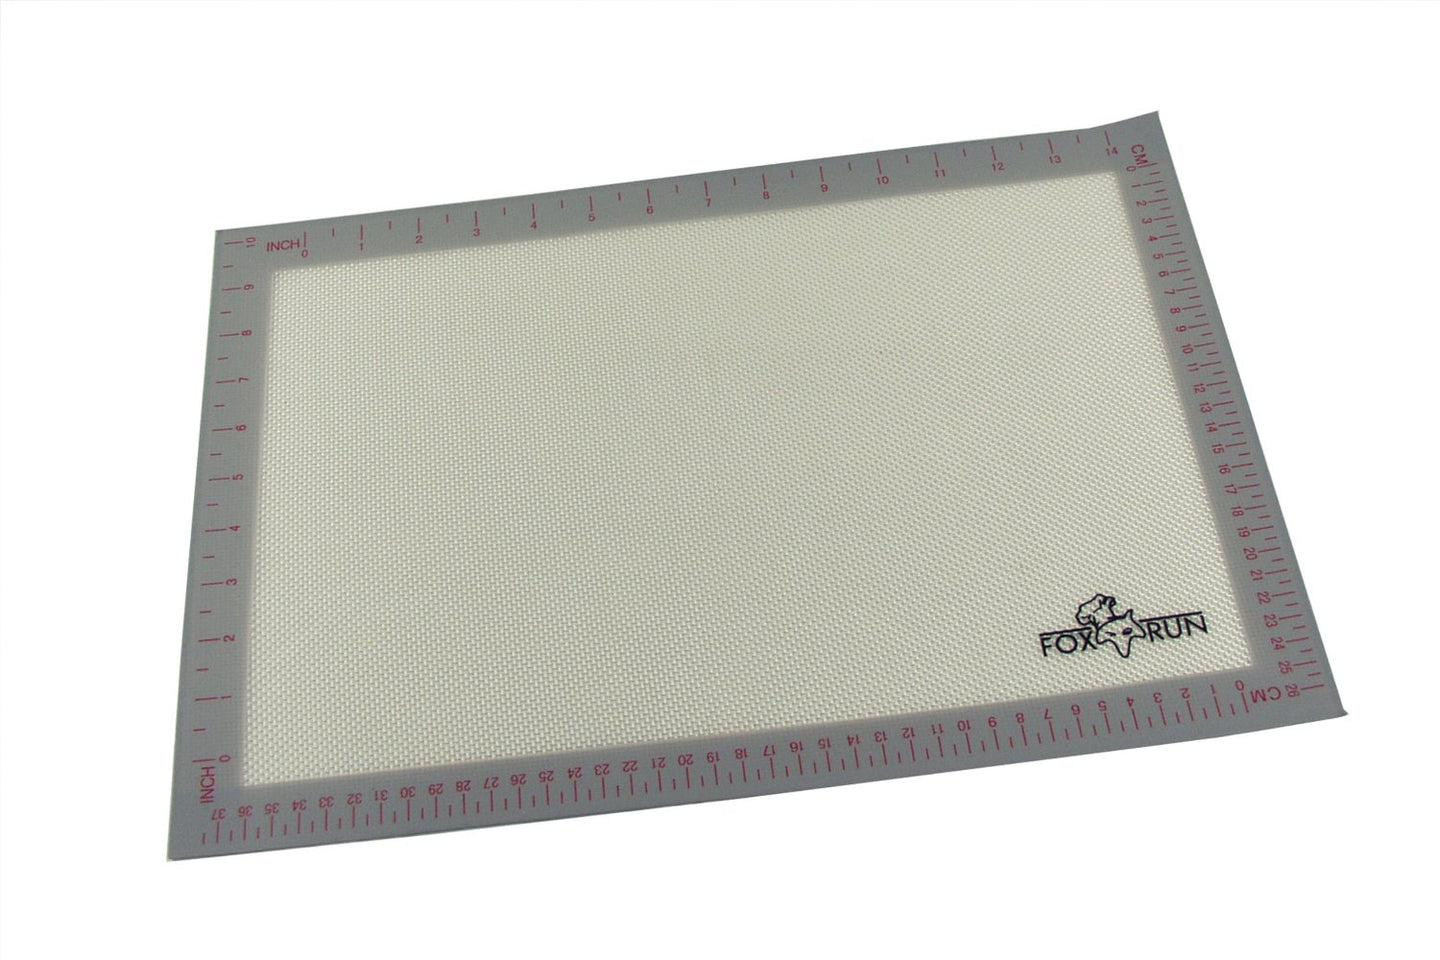 Fox Run Silicone Baking Mat - 11-3/4 x 16